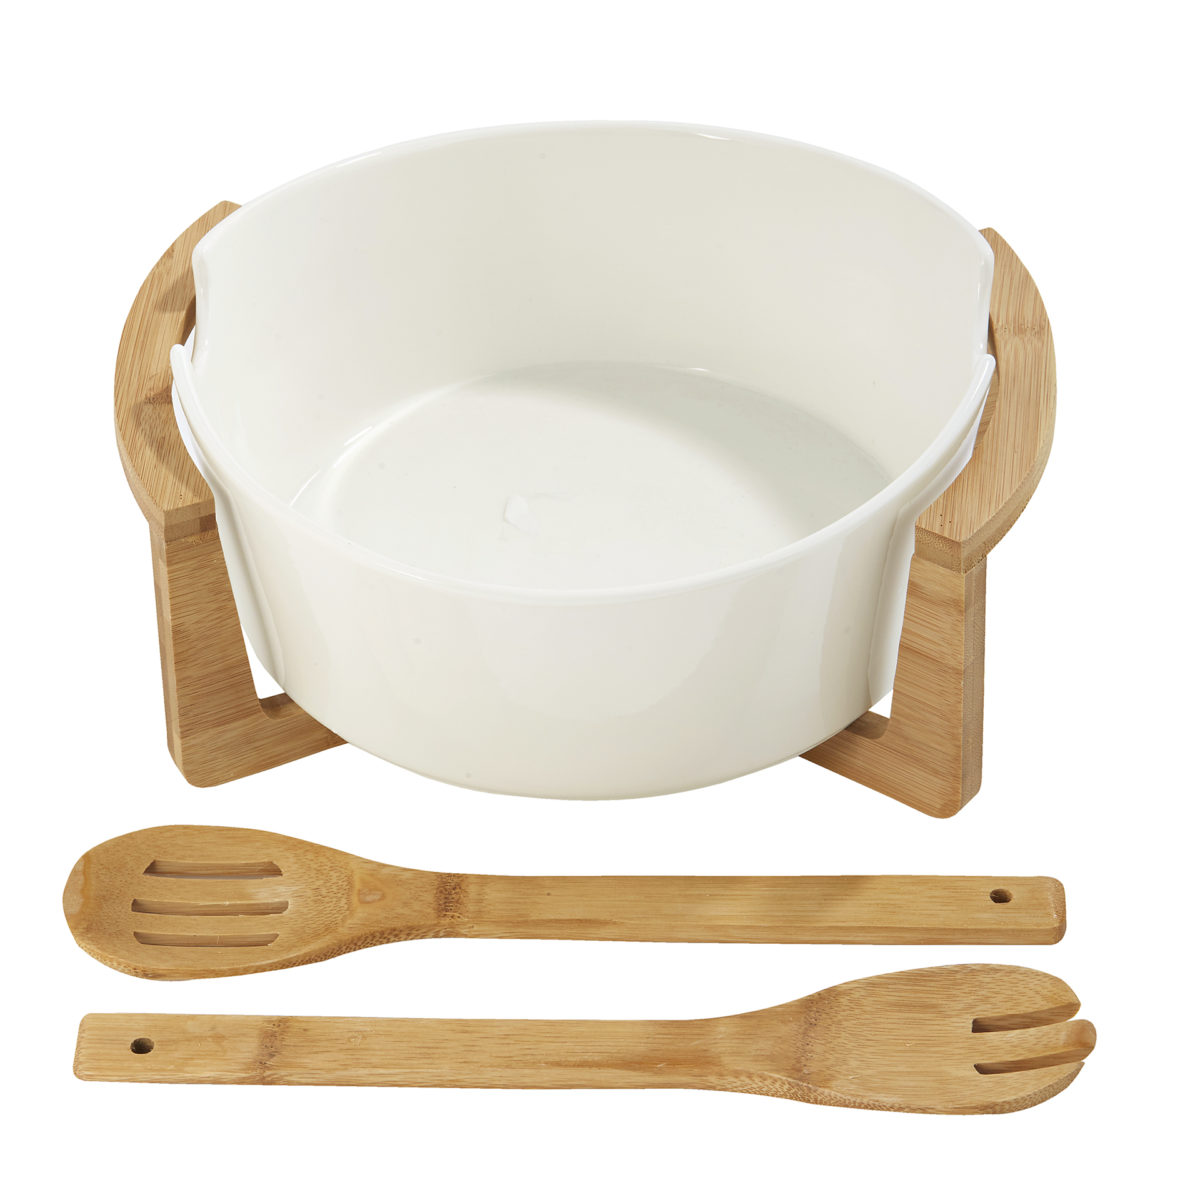 White Ceramic Salad Bowl on Wooden Stand 2